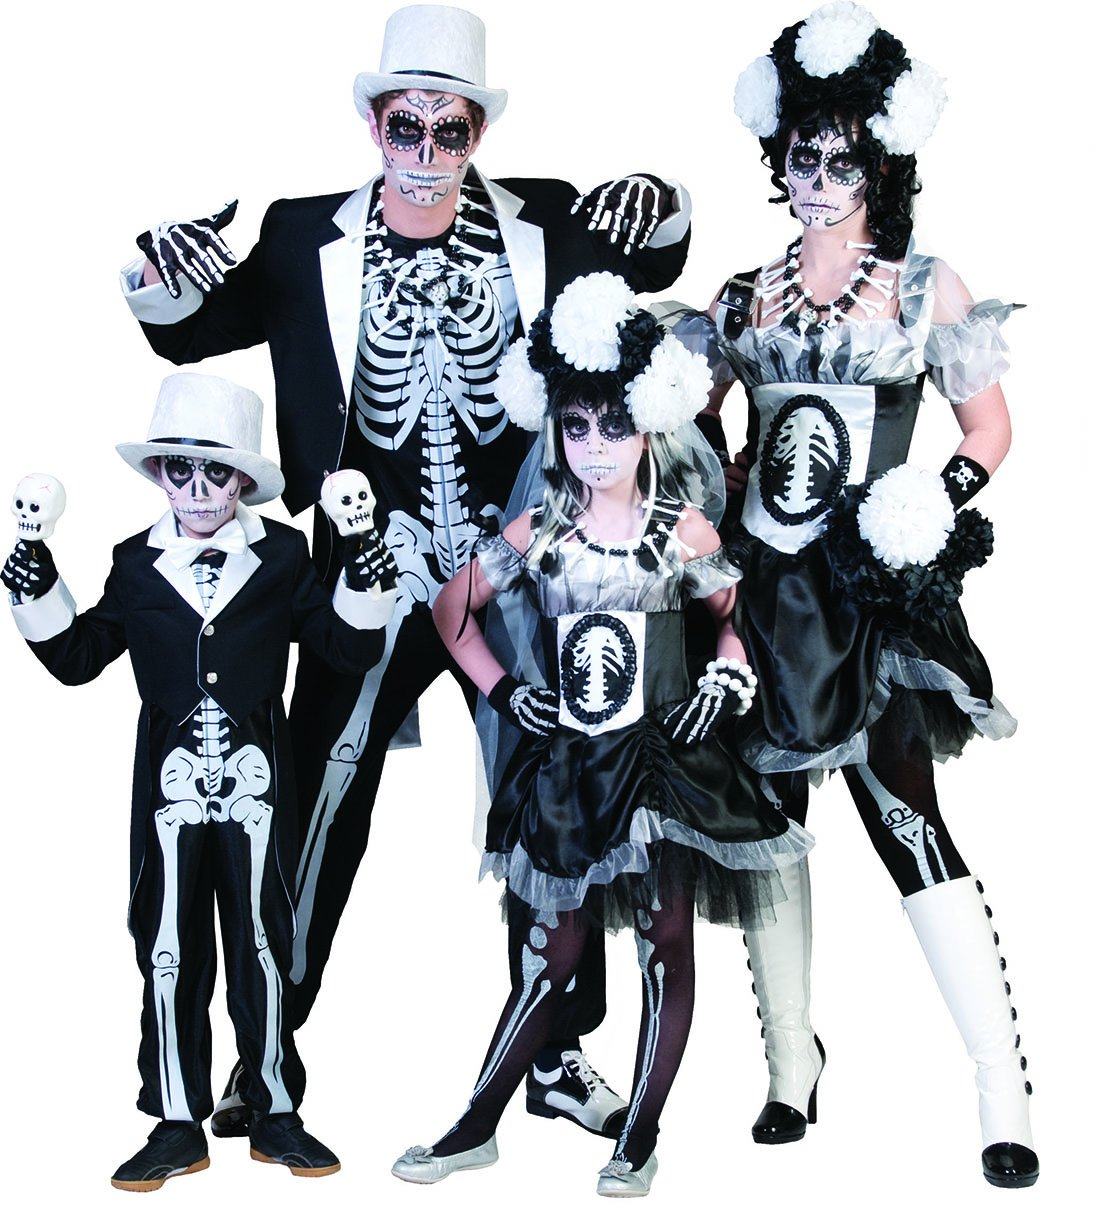 Fancy Ole - - - Herren Männer Halloween Karneval Kostüm Set Skelett Horror-Bräutigam, Sugar Skull, Day of Death, XL, Schwarz 82bc80